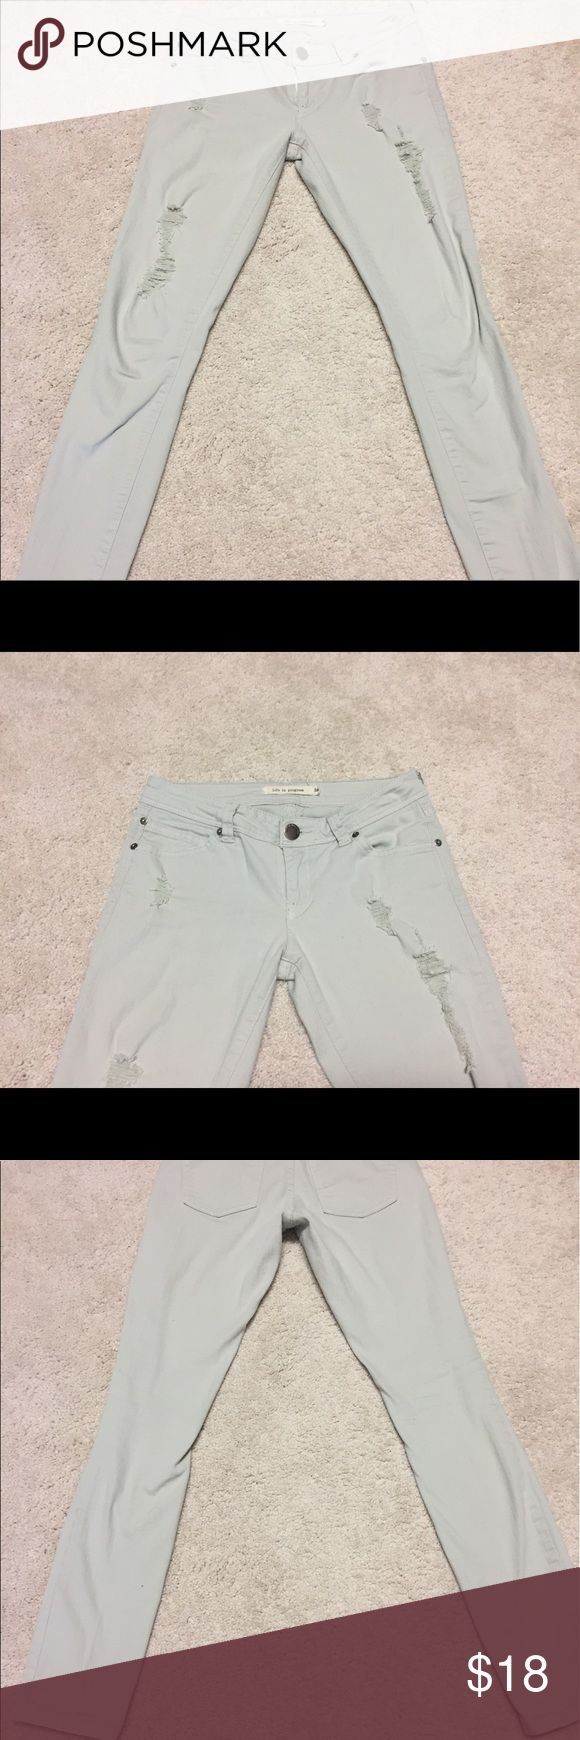 Light grey ripped jeans Great color. Very good condition Forever 21 Jeans Skinny